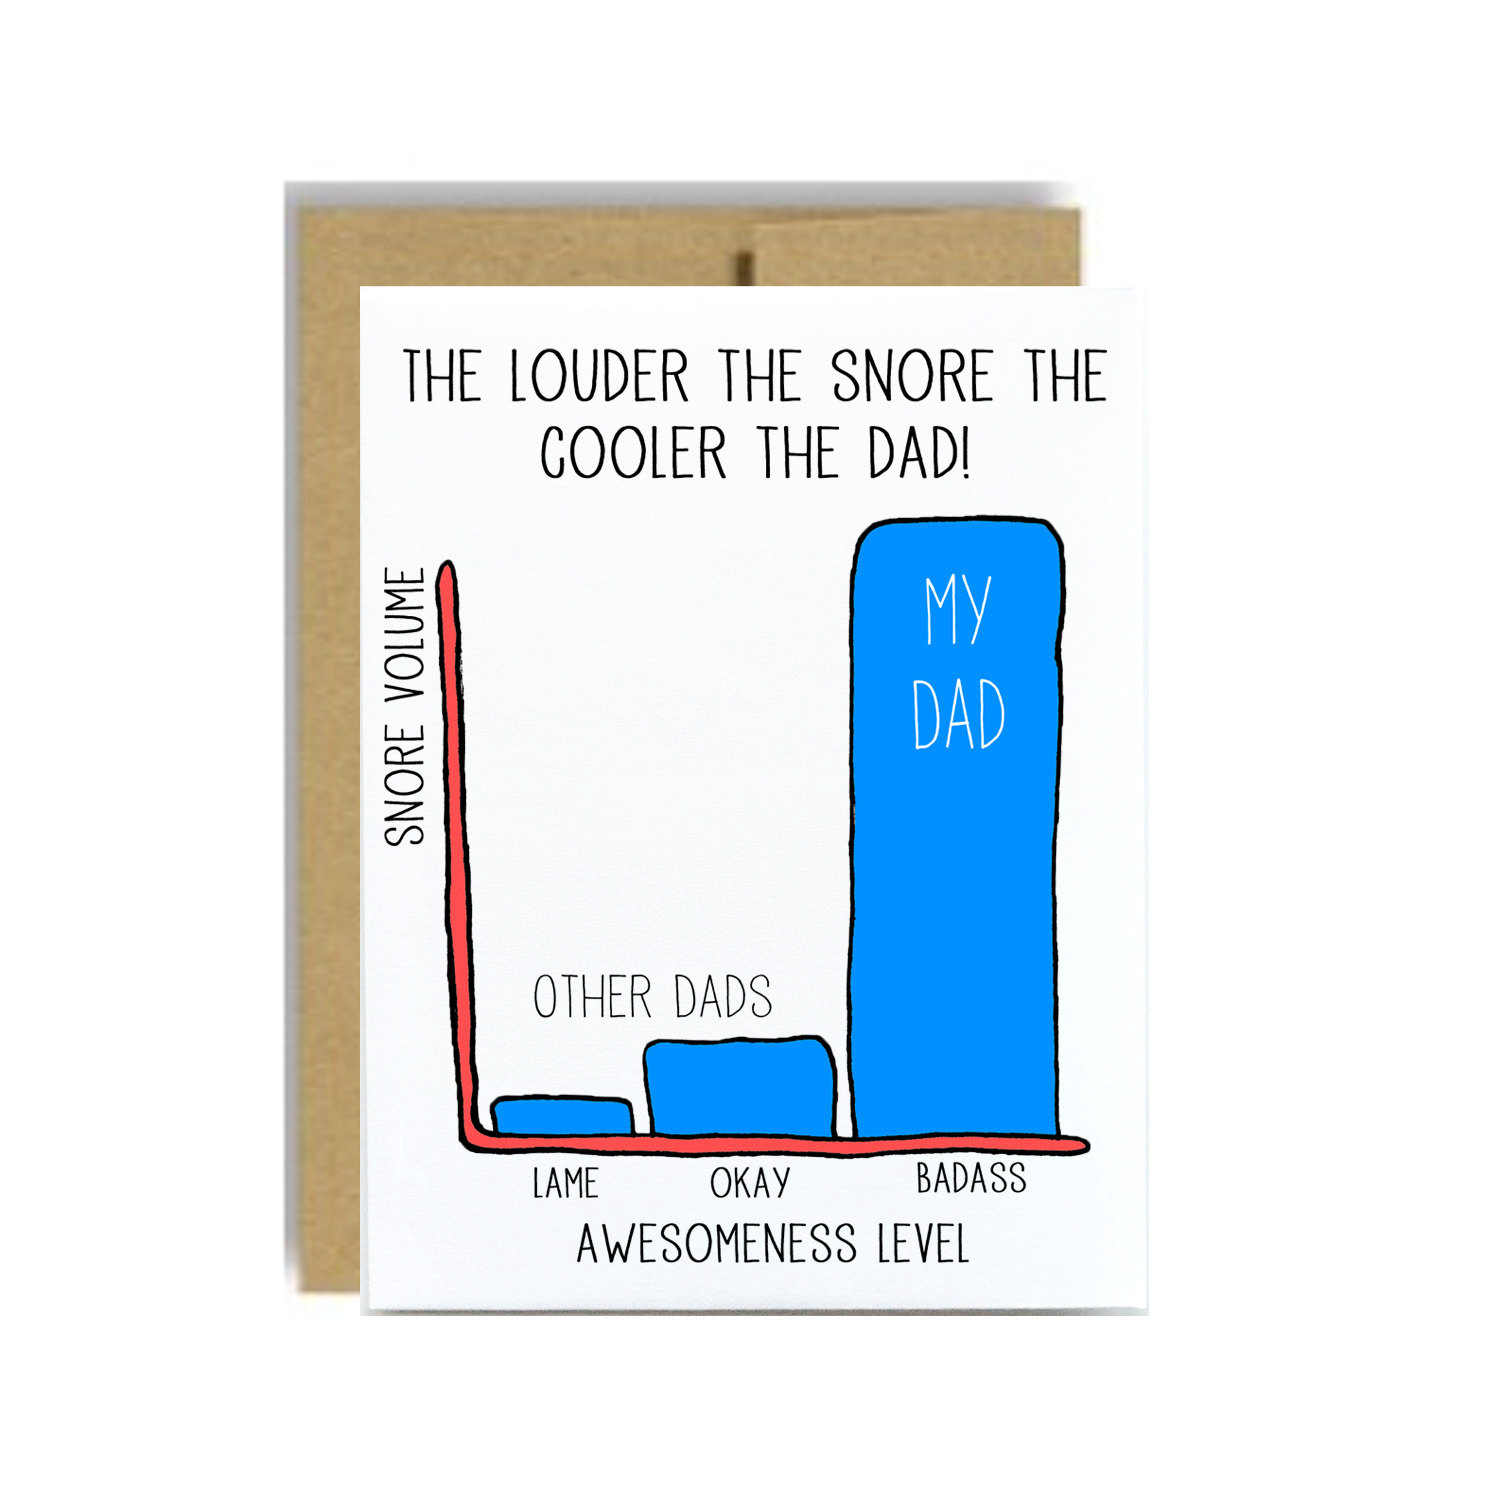 Good Card Ideas For Dads Birthday 100 Cool Birthday Cards For Dad Funny Birthday Card For Dad Him